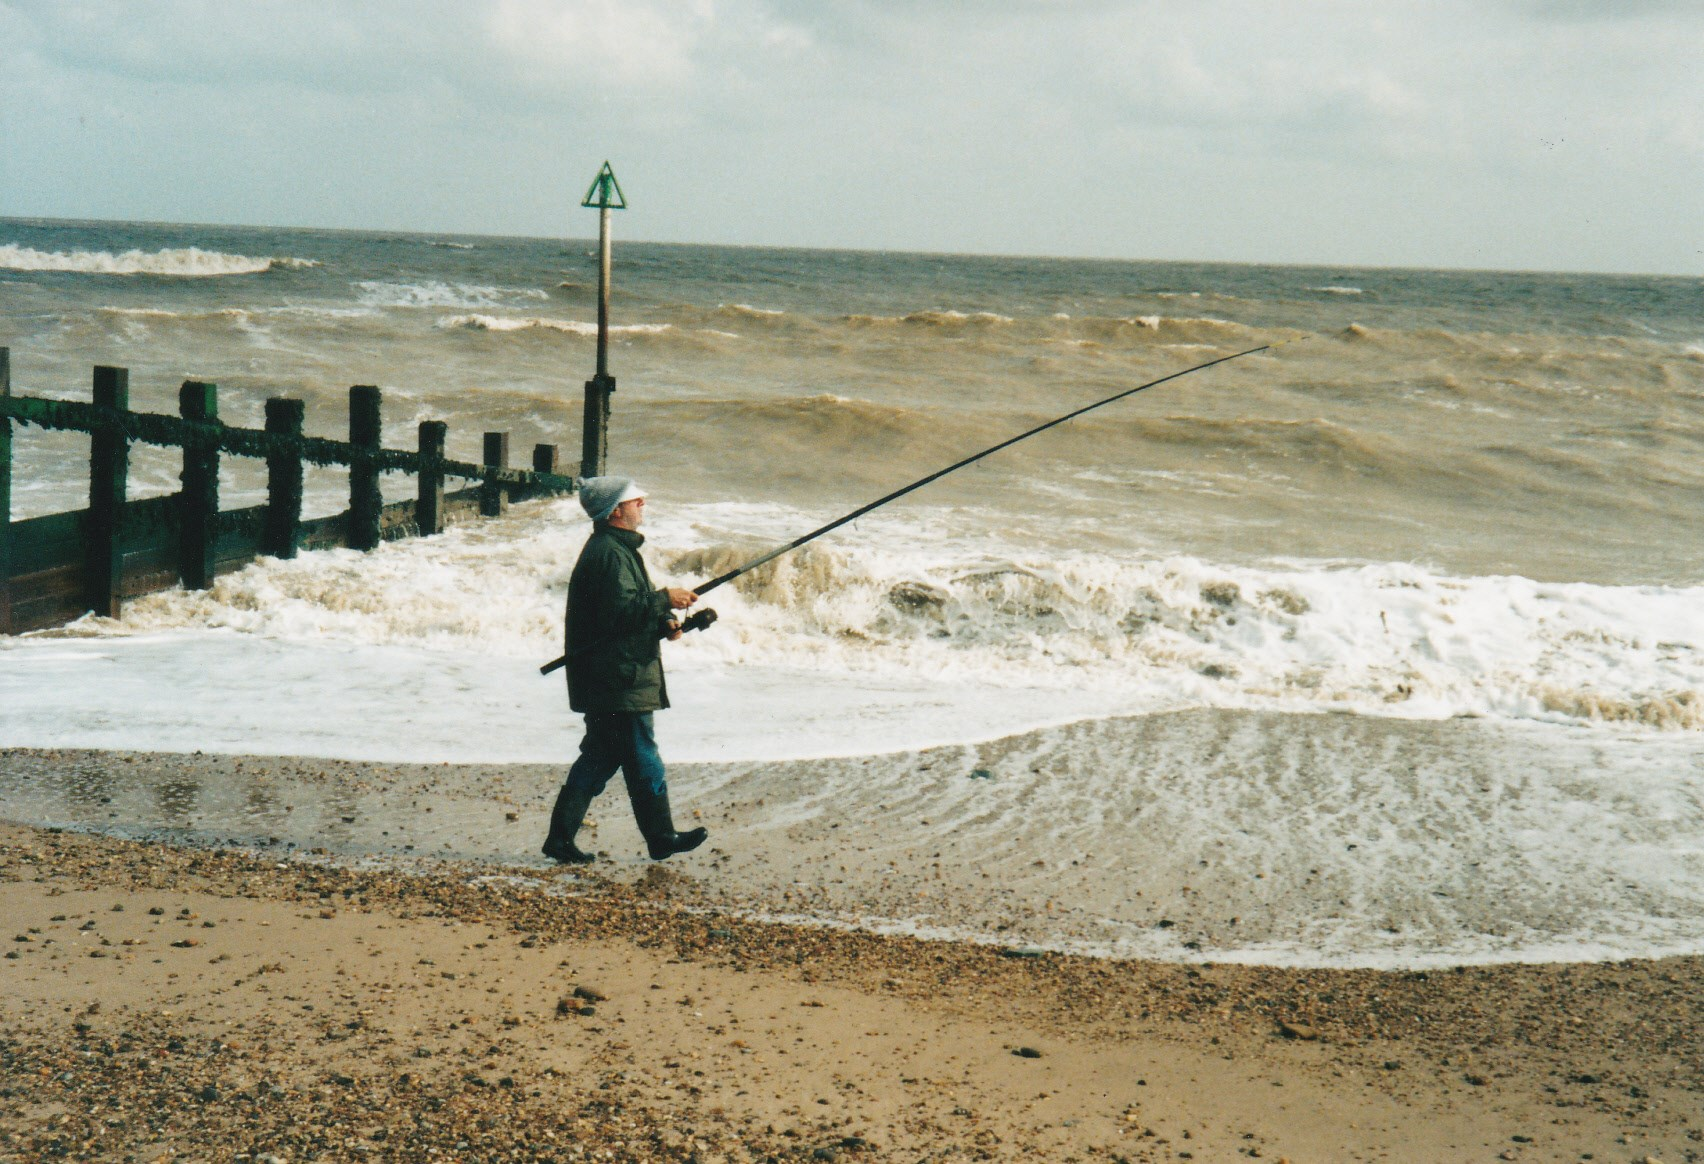 Fishing by the sea